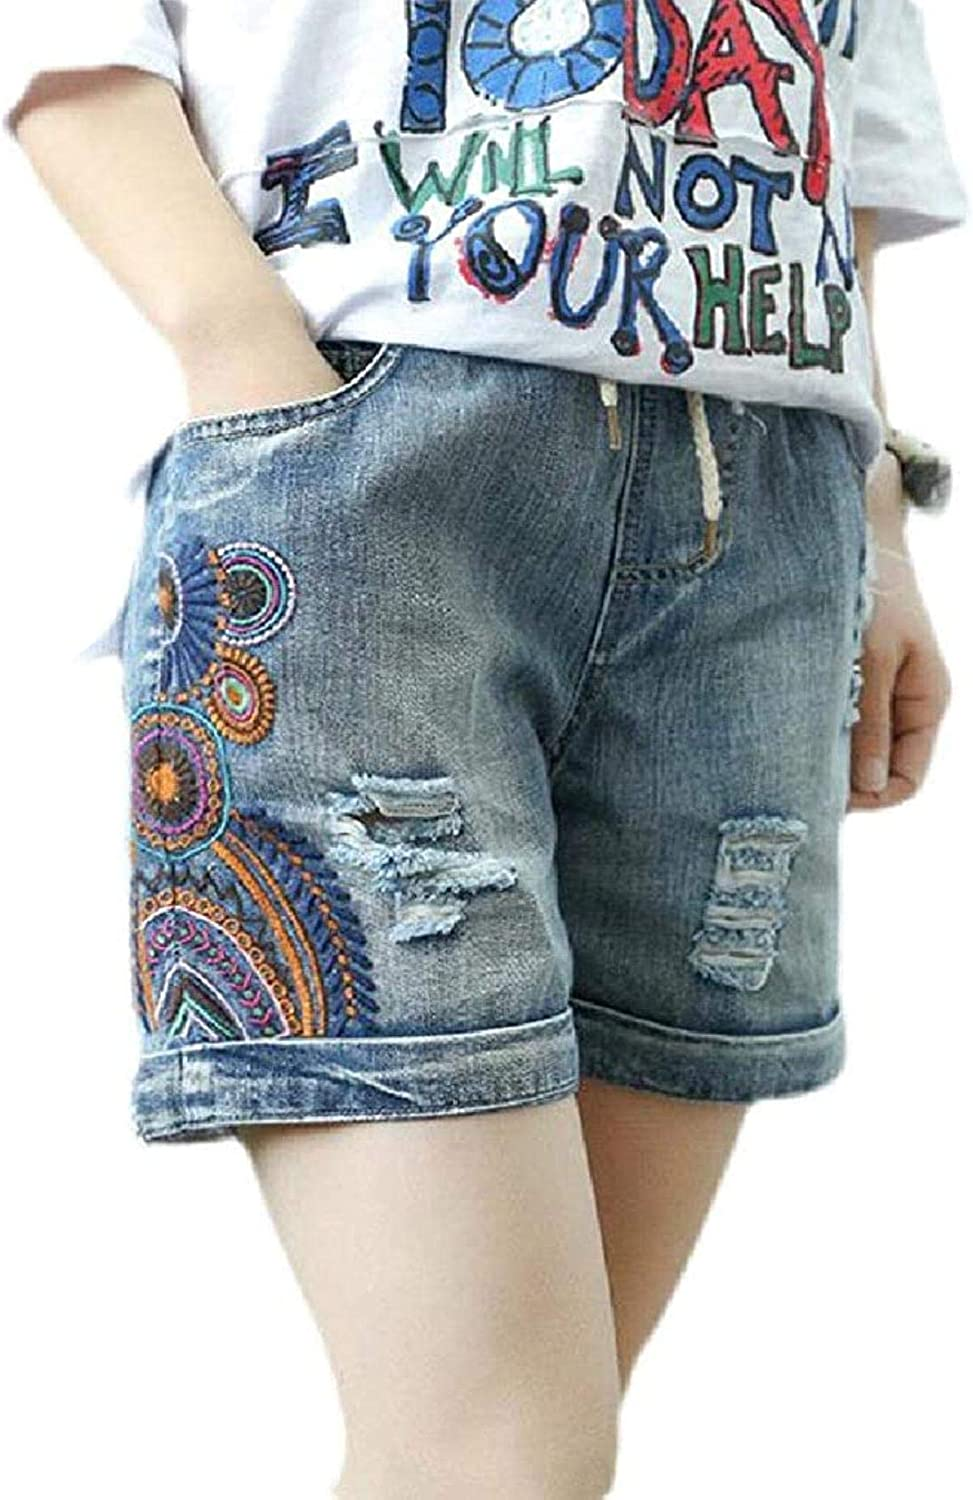 JNBGYAPS Women's Drawstring Loose Fit Embroidery Summer Ripped Distressed Denim Shorts Jeans